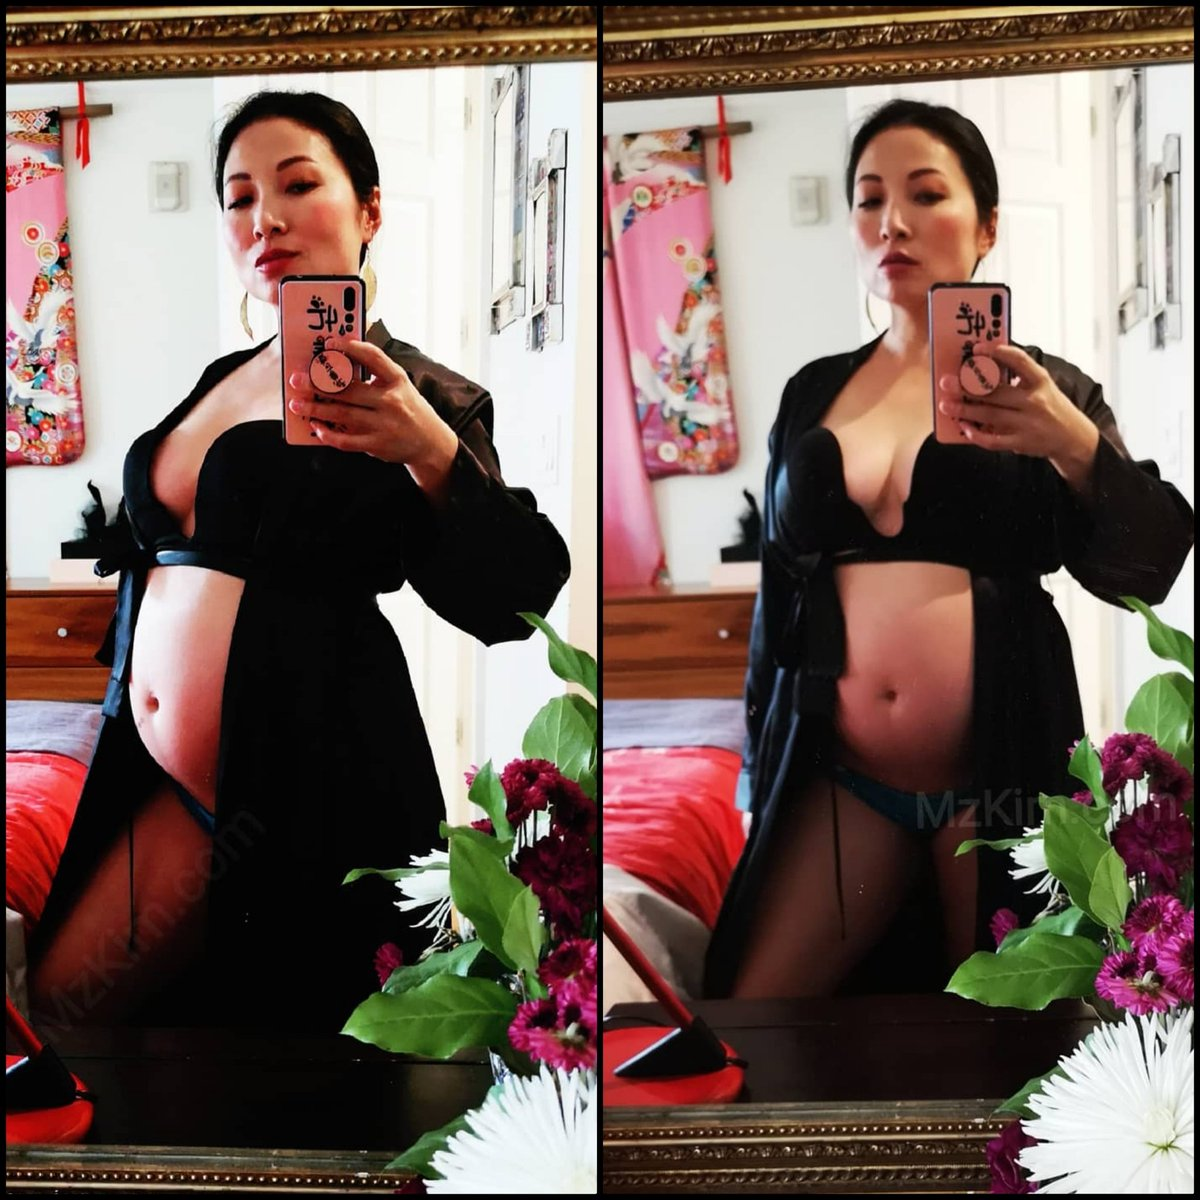 Well, heres something SCARY TO SHARE: Im super pregnant! This was not an easy decision to make, sharing this news. Yes, I am a dominatrix. Yes, I am a SW (s3x w0rker). And yes, I am pregnant. I hope to get support from my followers and friends. 1